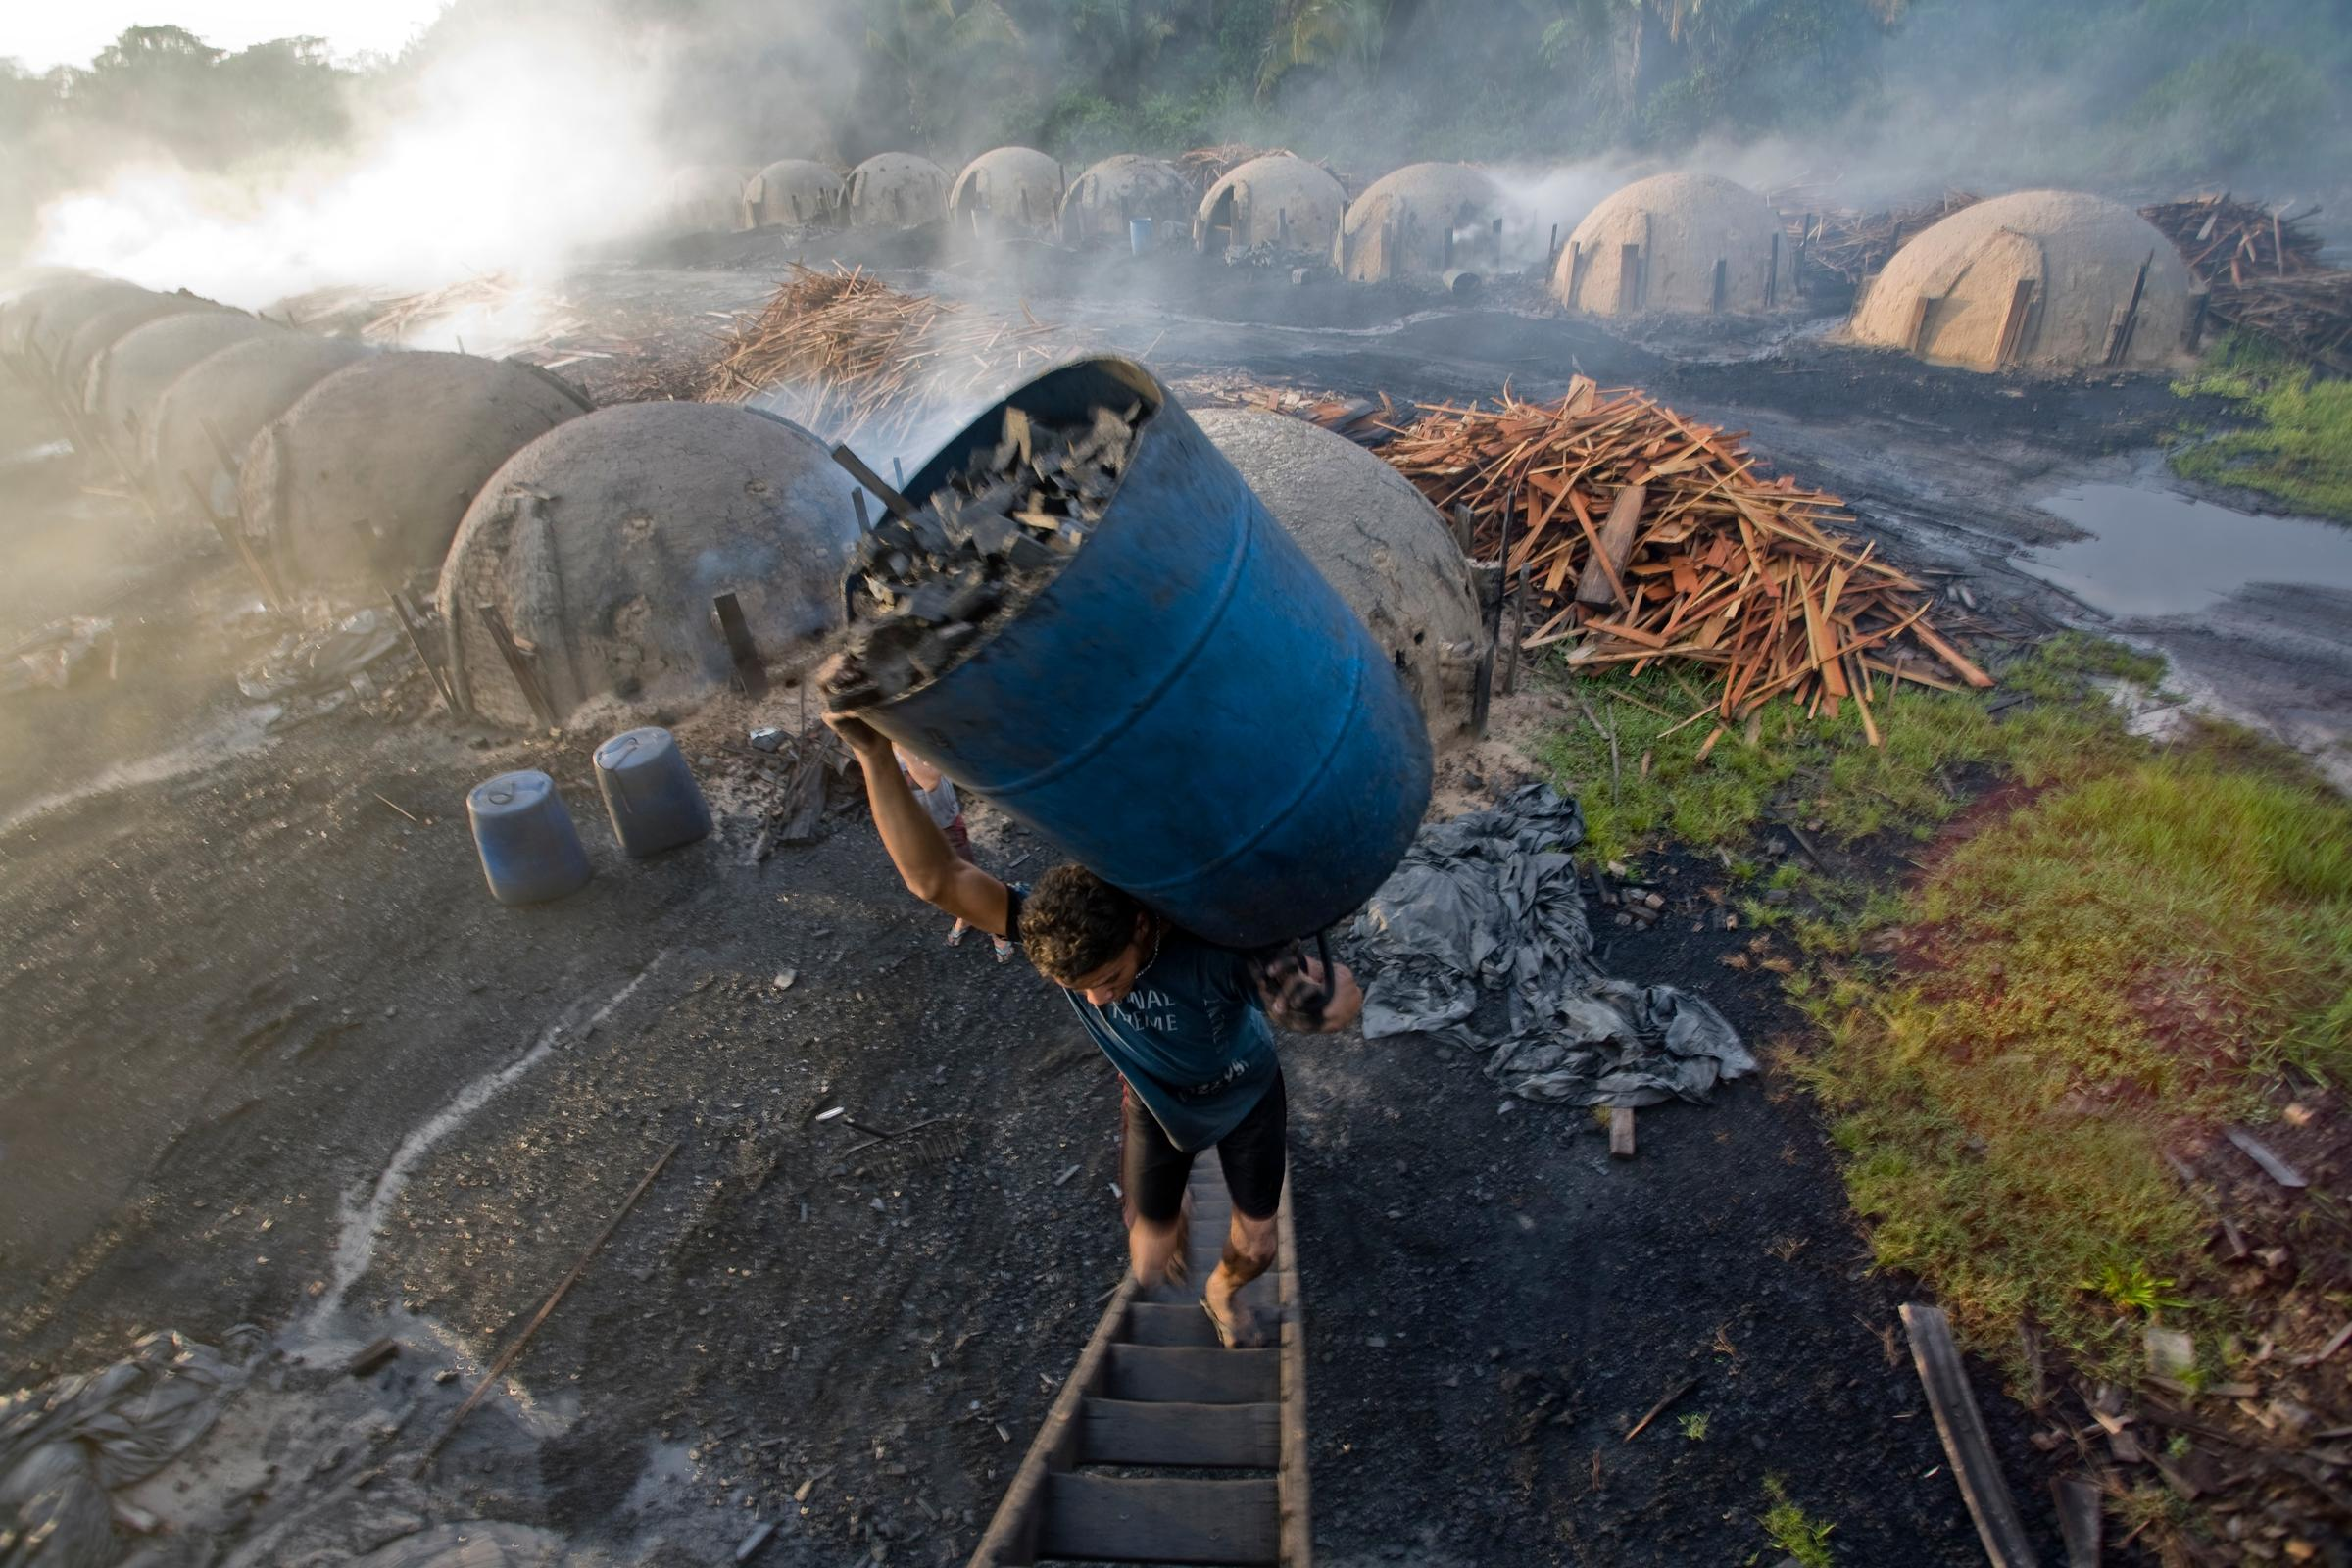 Brazilian charcoal mining linked to modern slavery - Free the Slaves